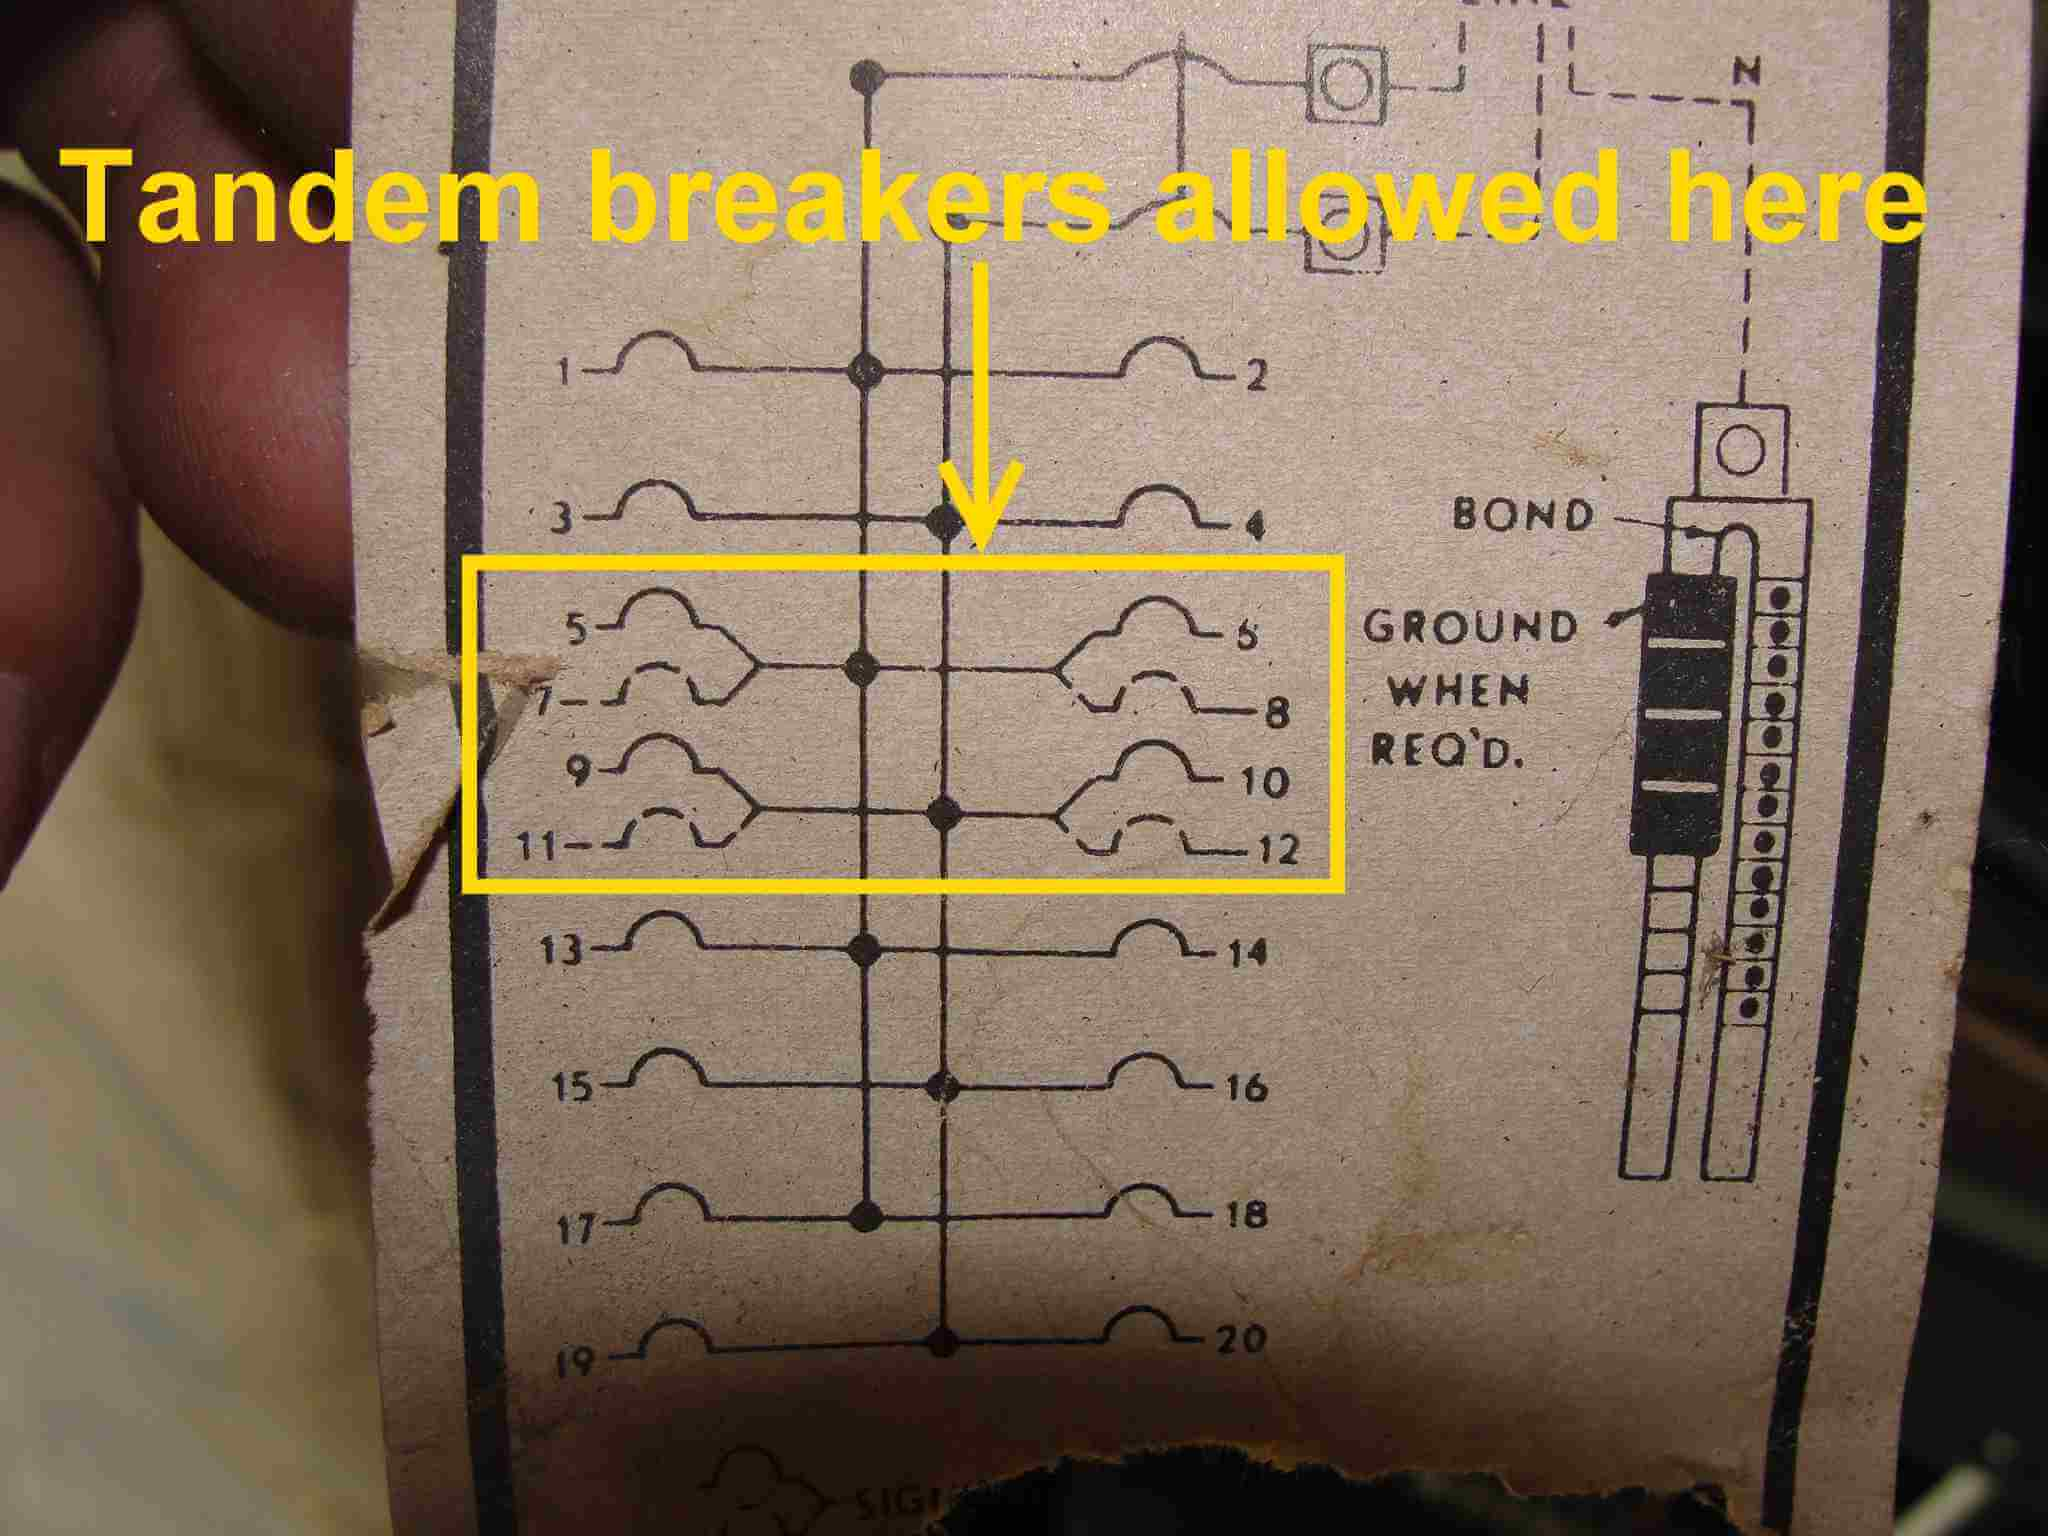 Wiring Diagram 220 Breaker Box Service Panel Library Panelboard 2 How To Know When Tandem Circuit Breakers